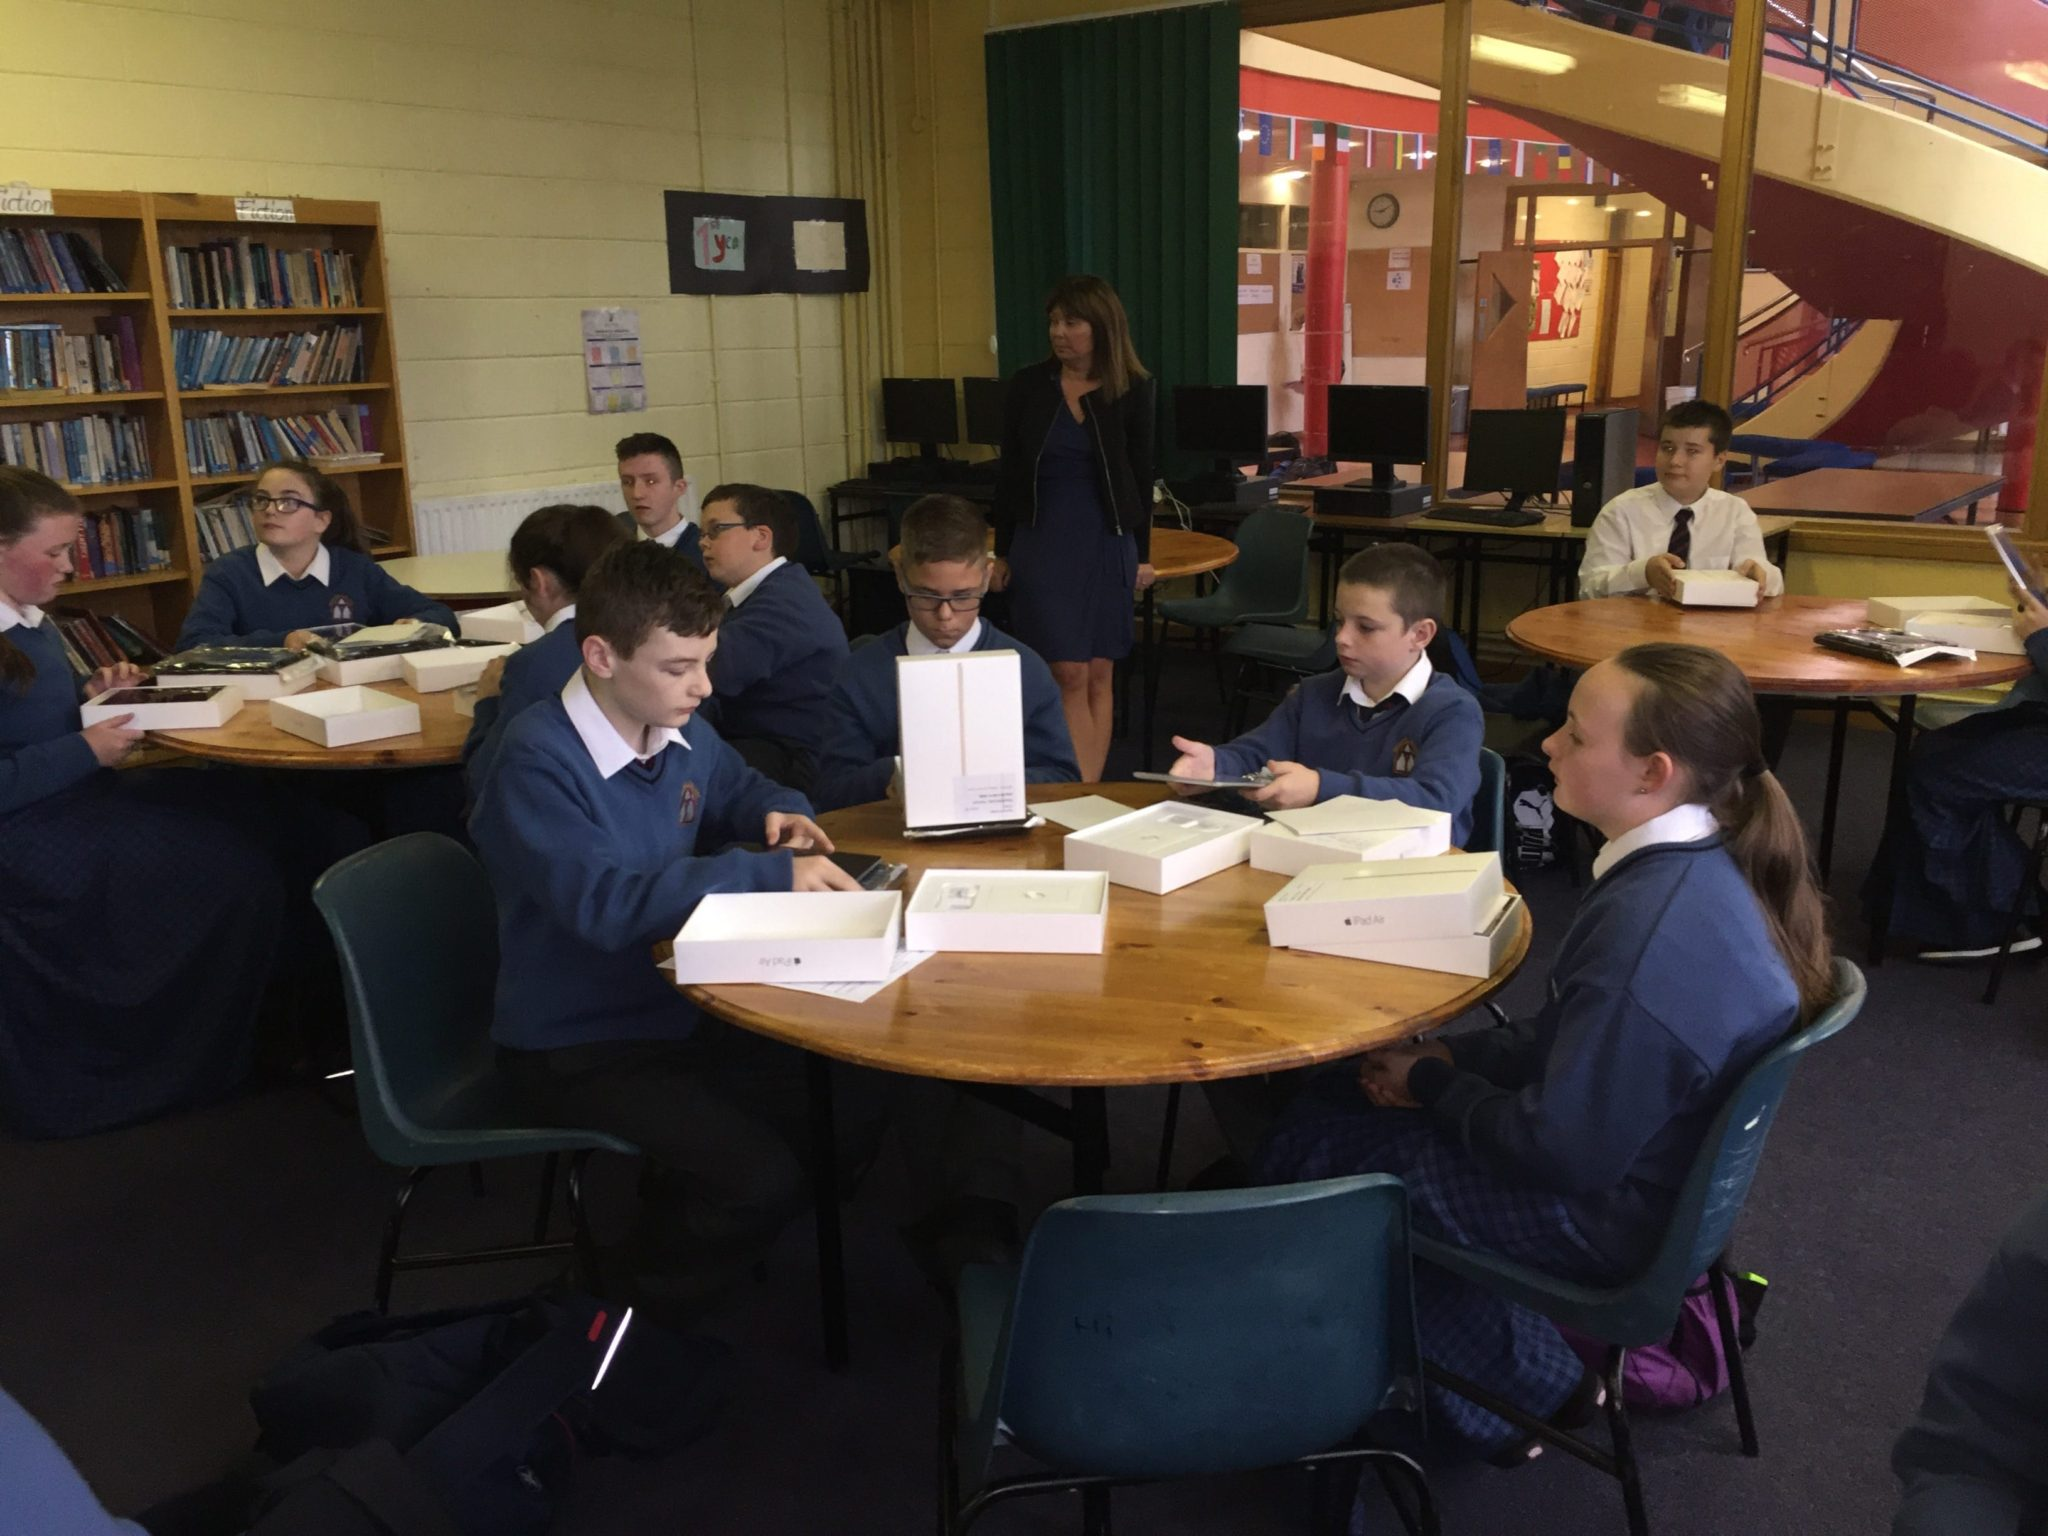 September 2016: Excitement as some of the Newcastle West Desmond College first year students open their iPads